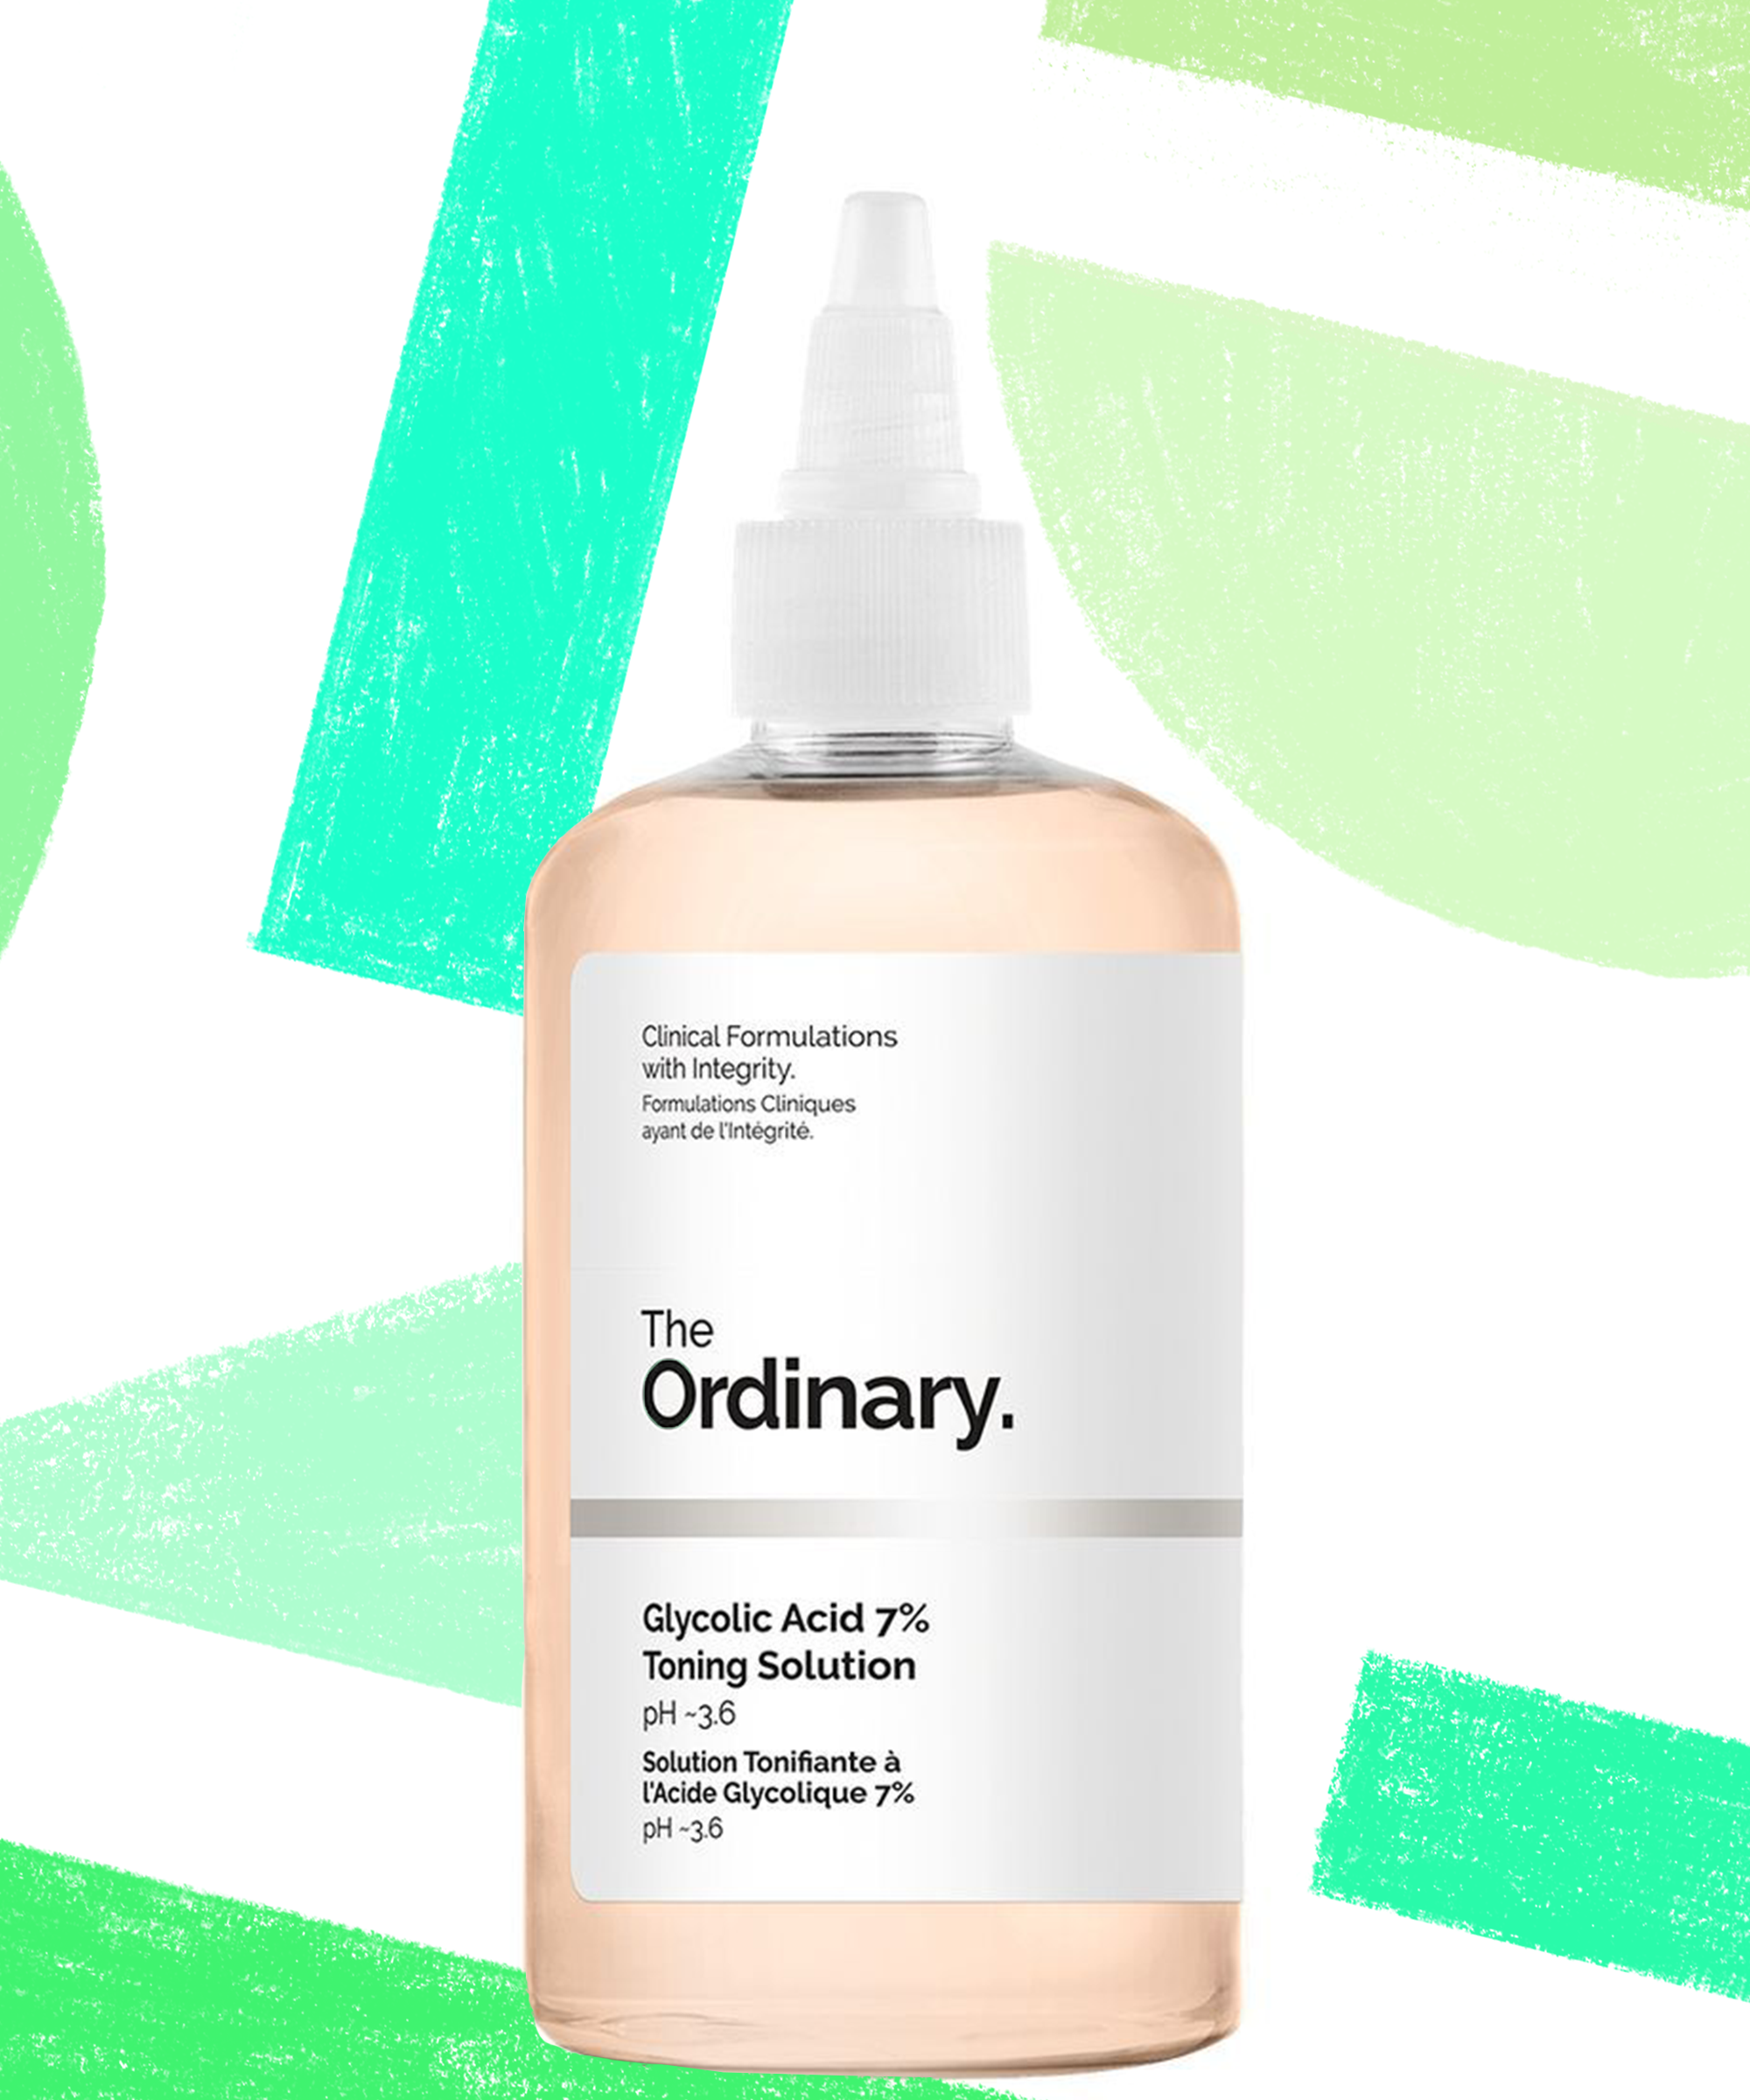 The Ordinary Skin Care Products SkinStore Launch